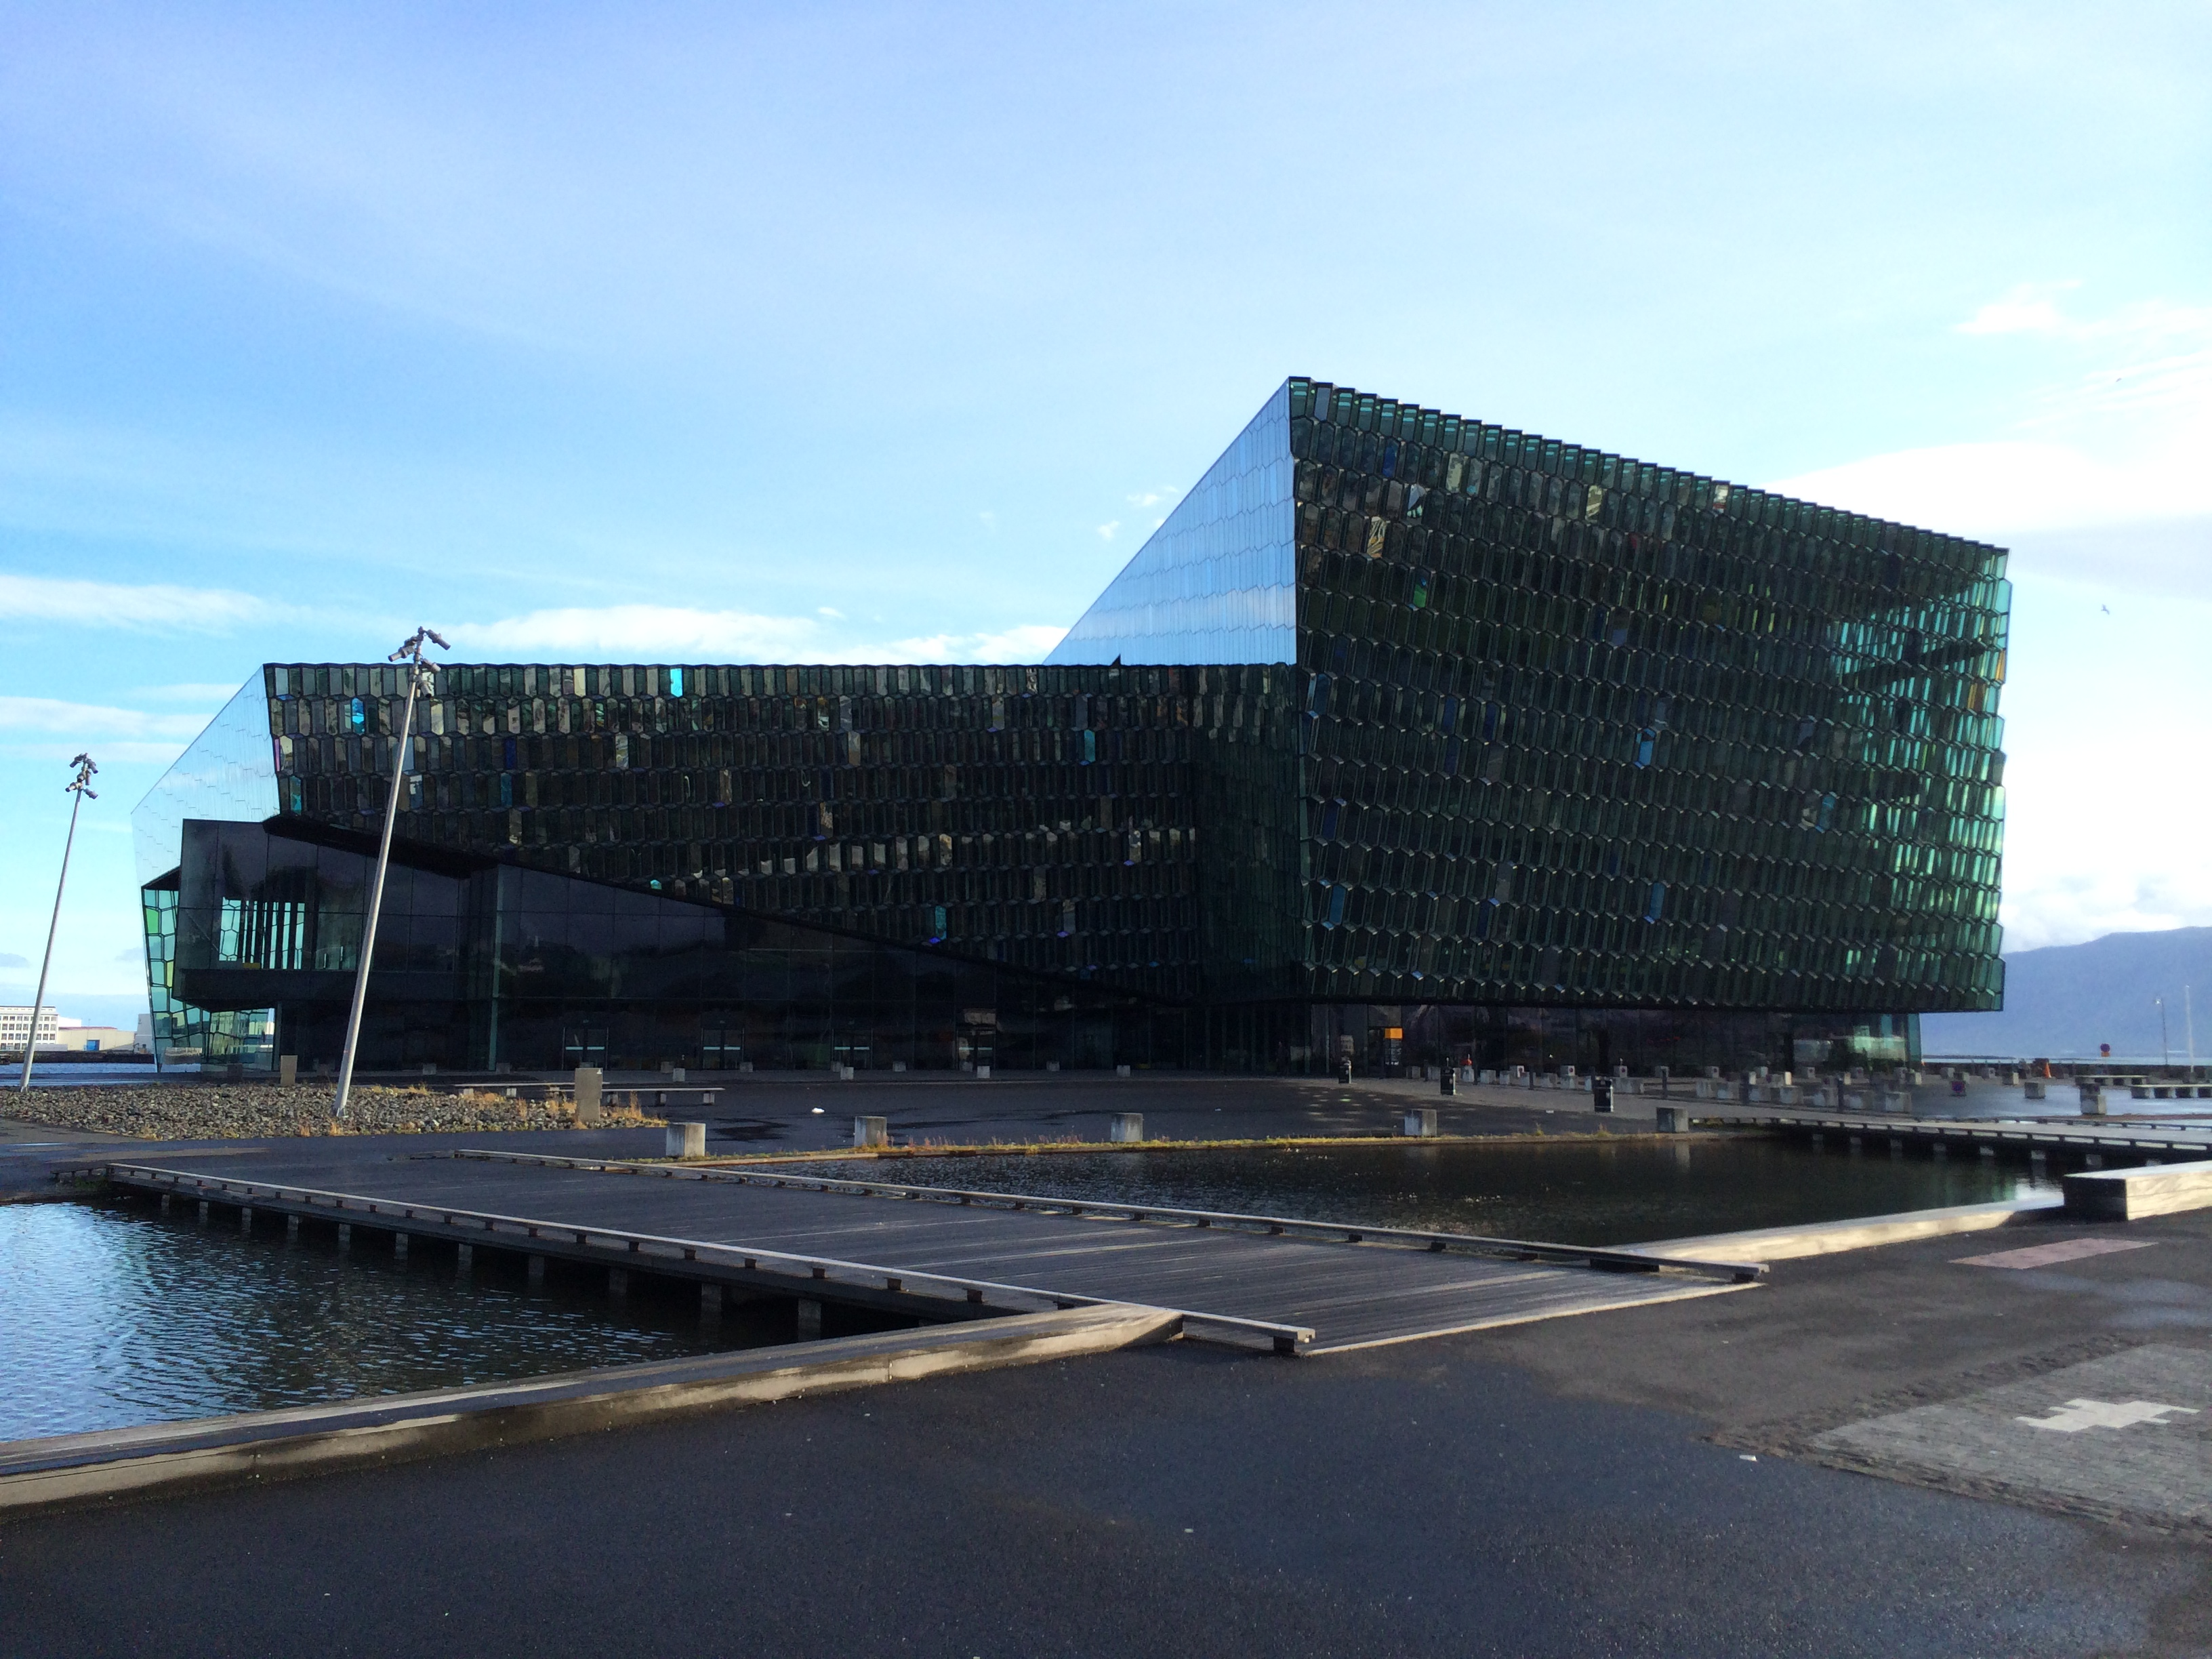 Harpa Concert Hall, Reykjavik (Photo: Brian Wise)